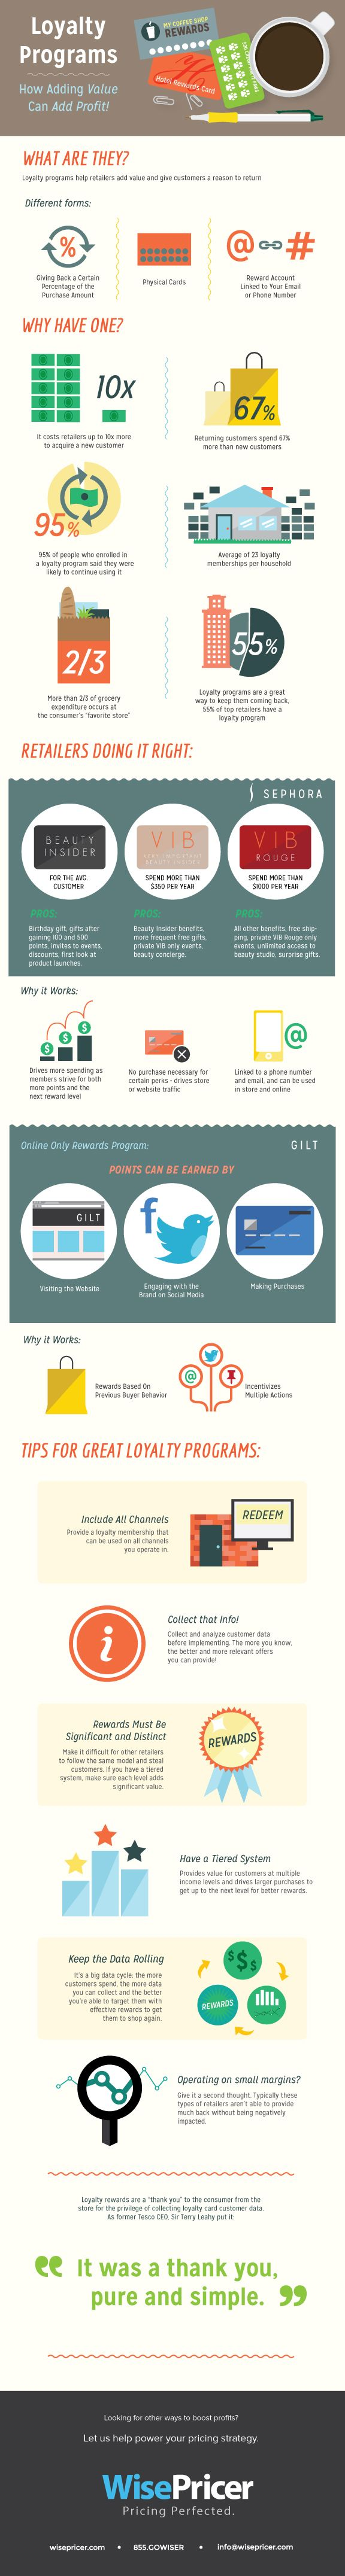 Loyalty Programs: How Adding Value Can Add Profit